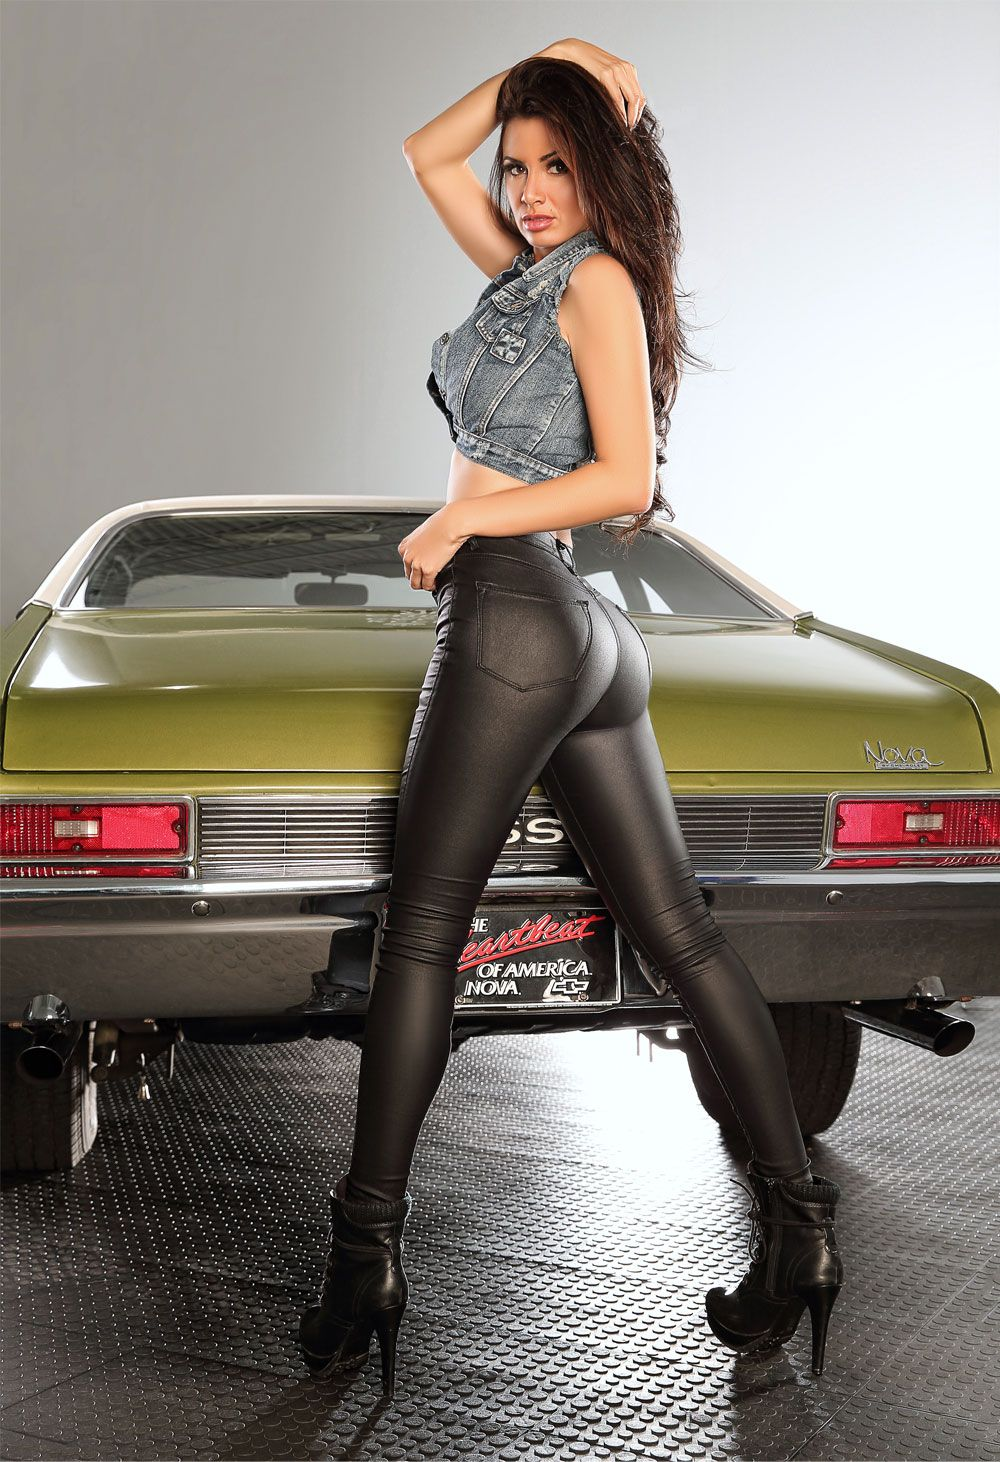 Chevy nova with naked girl fill blank